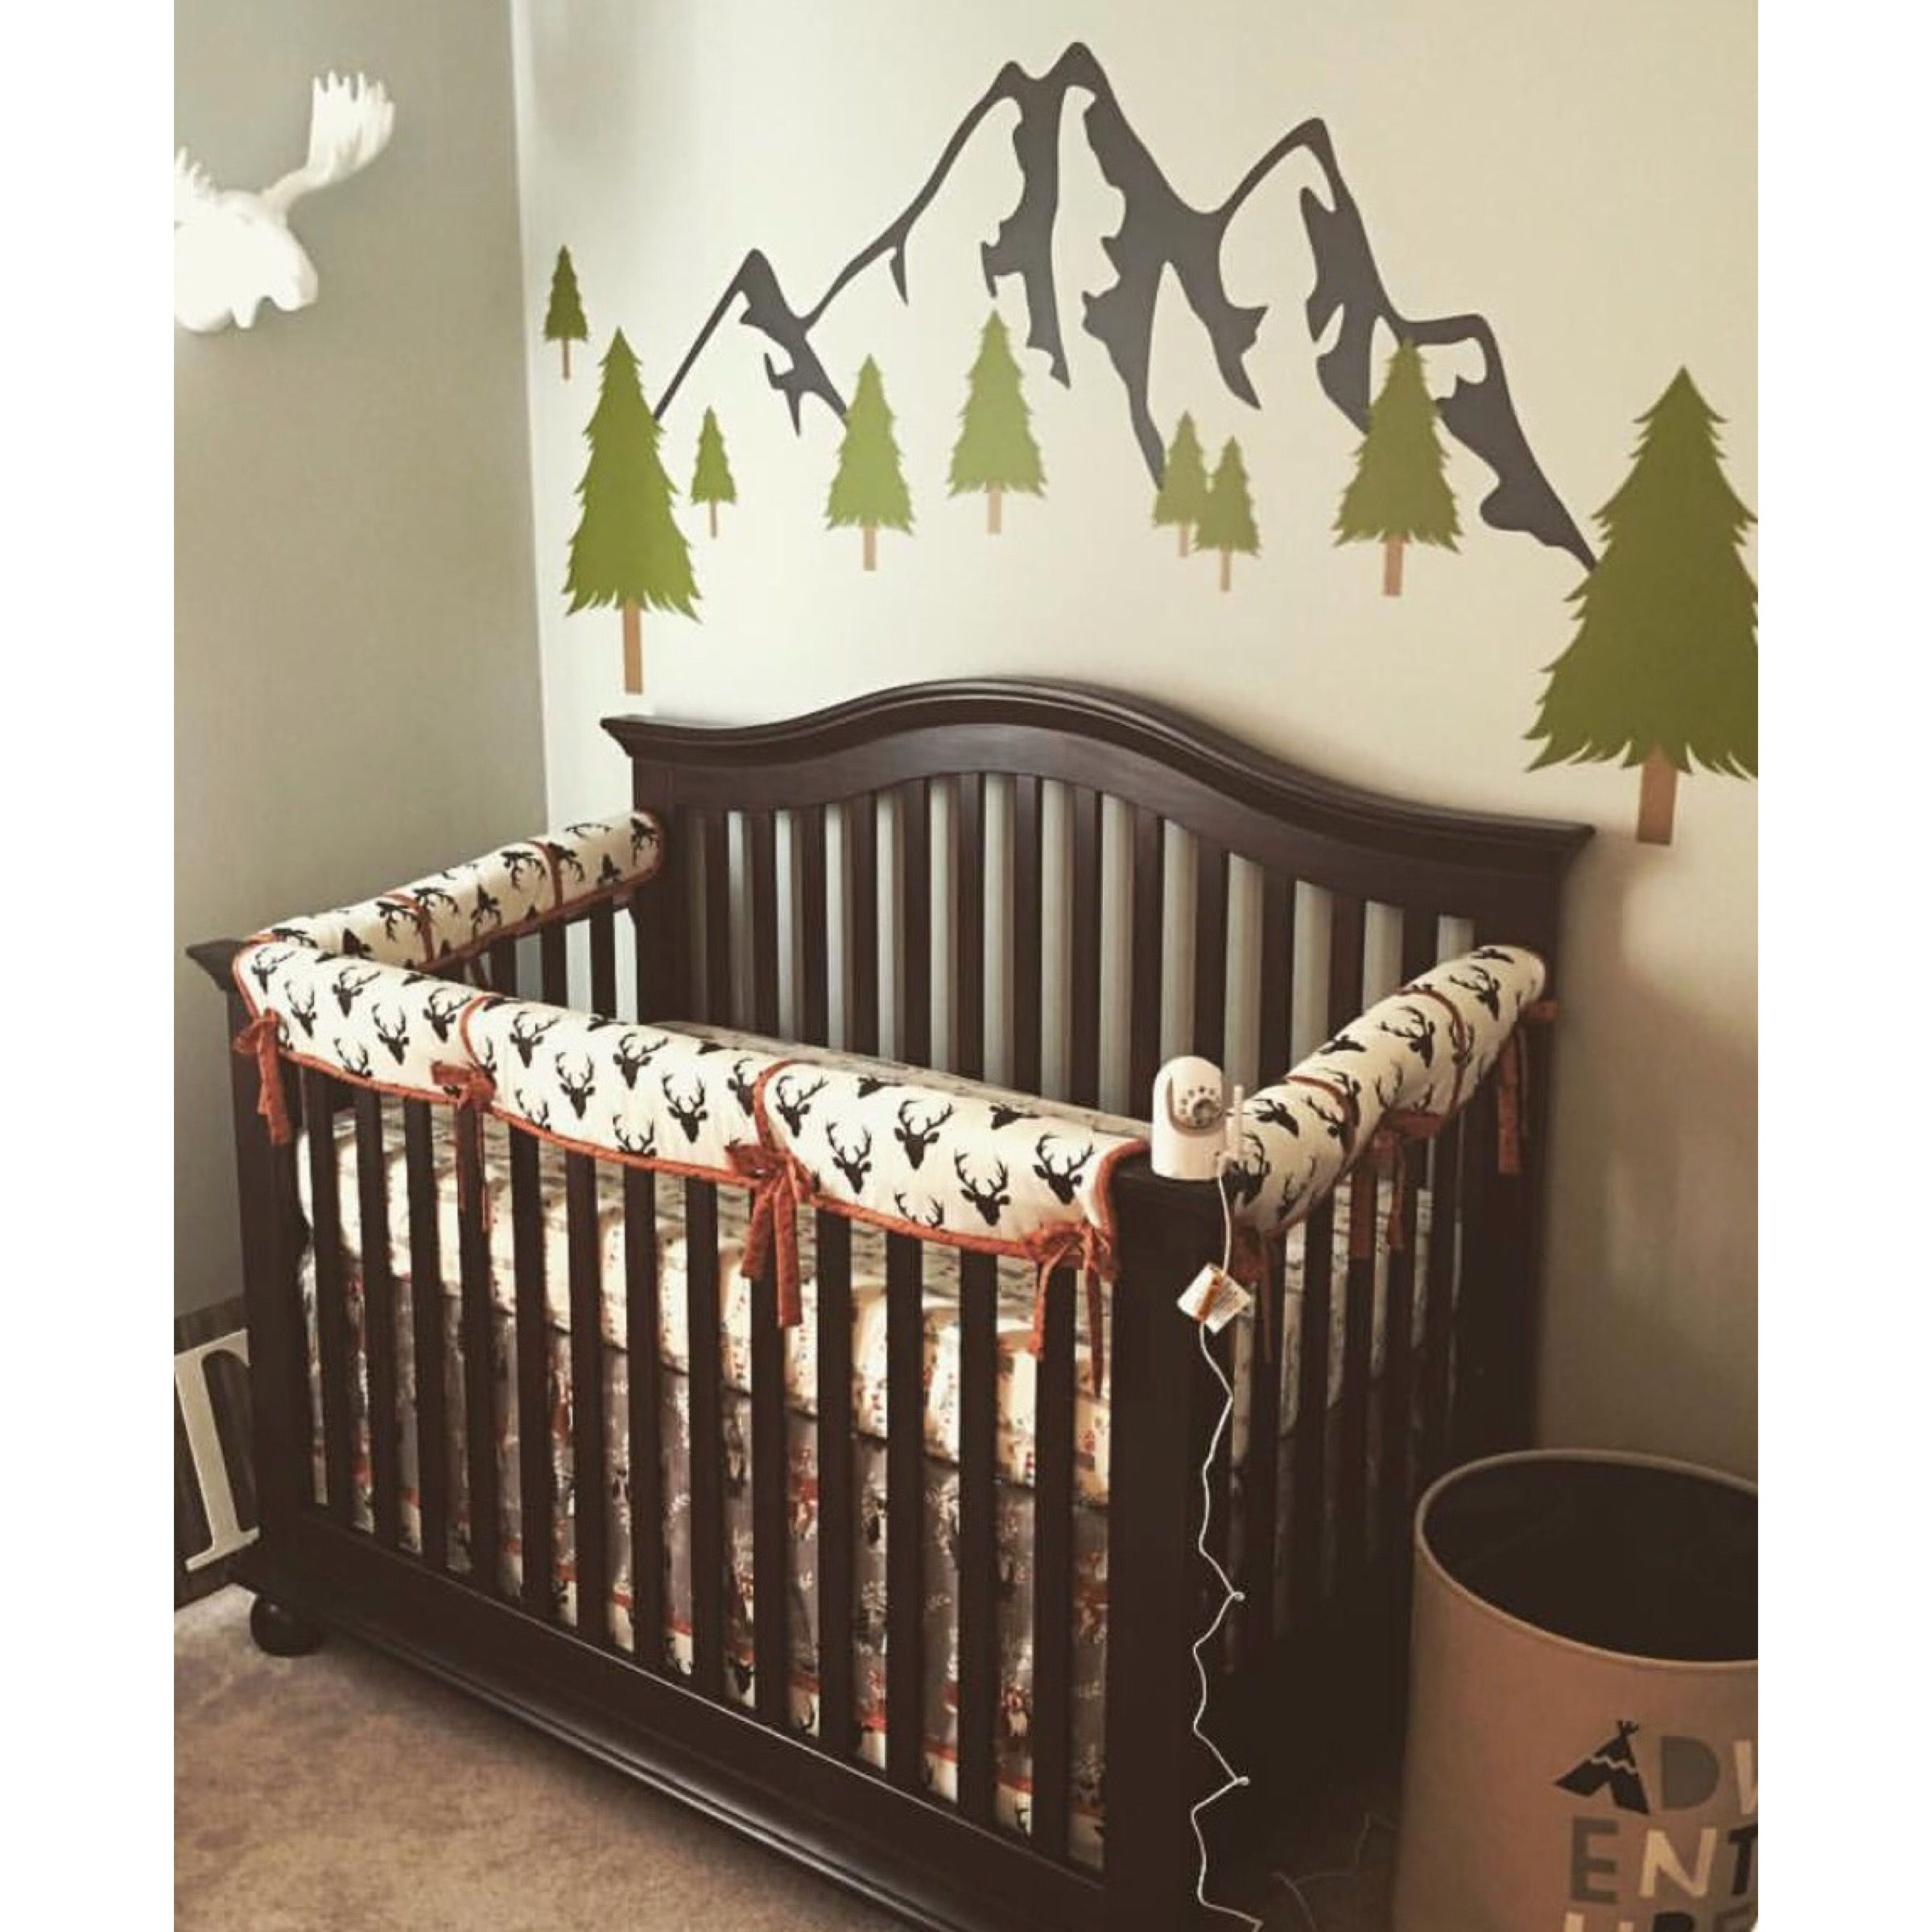 Deer Crib Bedding Woodsy Nursery Woodland Baby Bedding Crib Bedding Boy